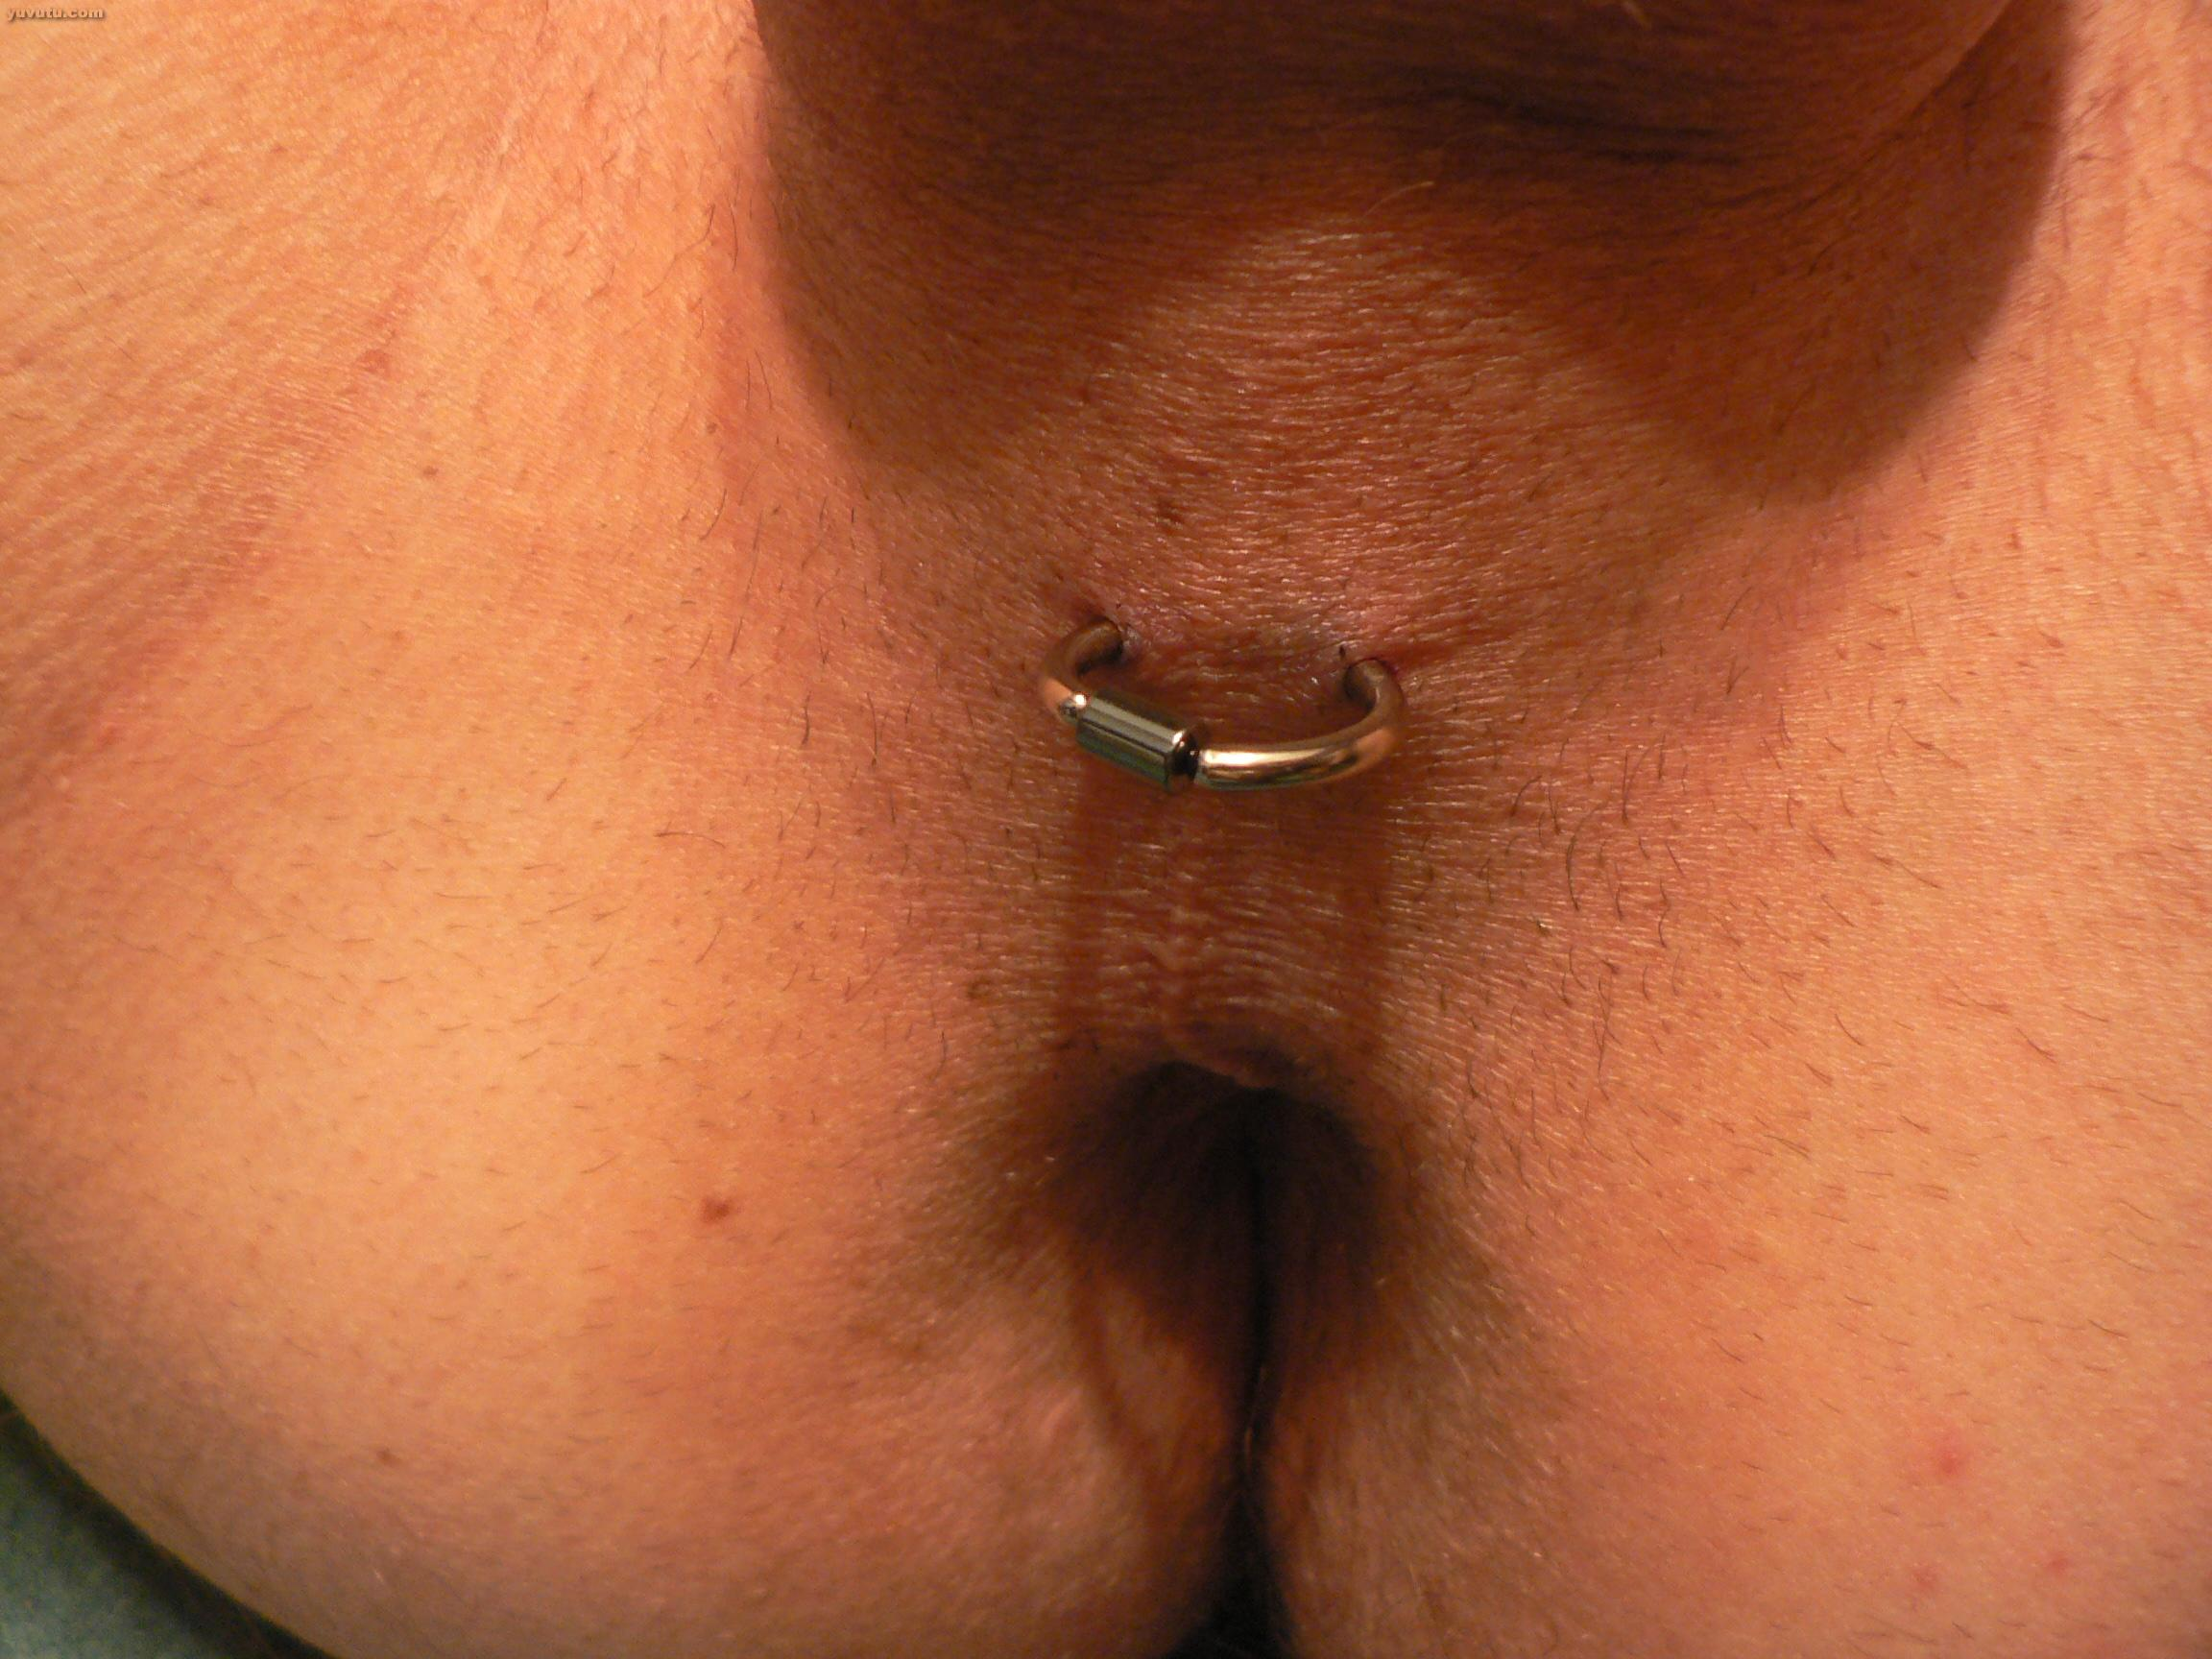 Piercings on anus pictures